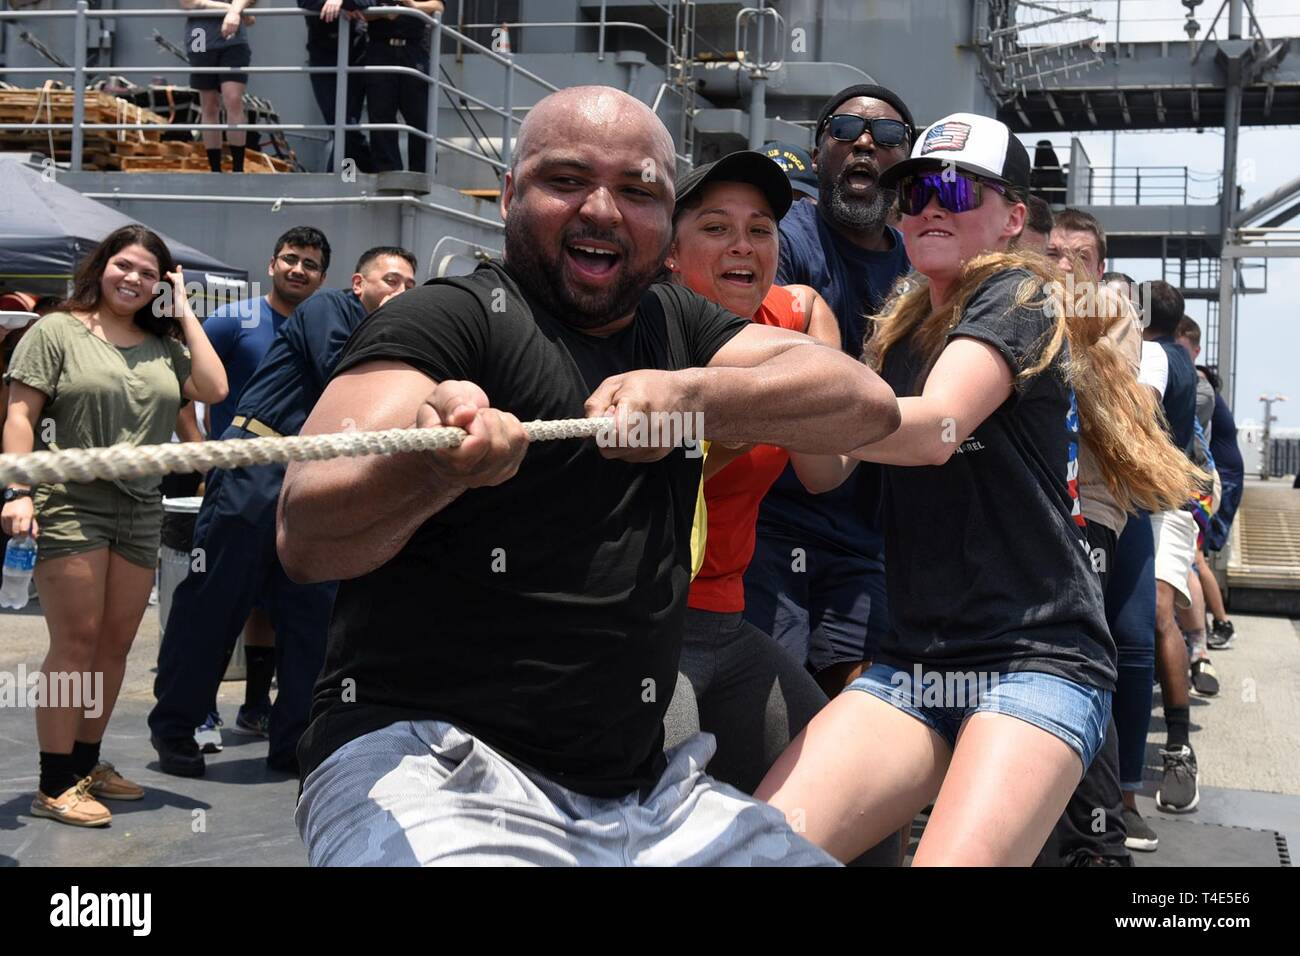 SOUTH CHINA SEA (March 31, 2019) - Sailors attached to U.S. 7th Fleet Flagship USS Blue Ridge (LCC 19) participate in a tug-of-war during a steel beach picnic. Blue Ridge is the oldest operational ship in the Navy, and as 7th Fleet command ship, is responsible for fostering relationships within the Indo-Pacific Region. - Stock Image